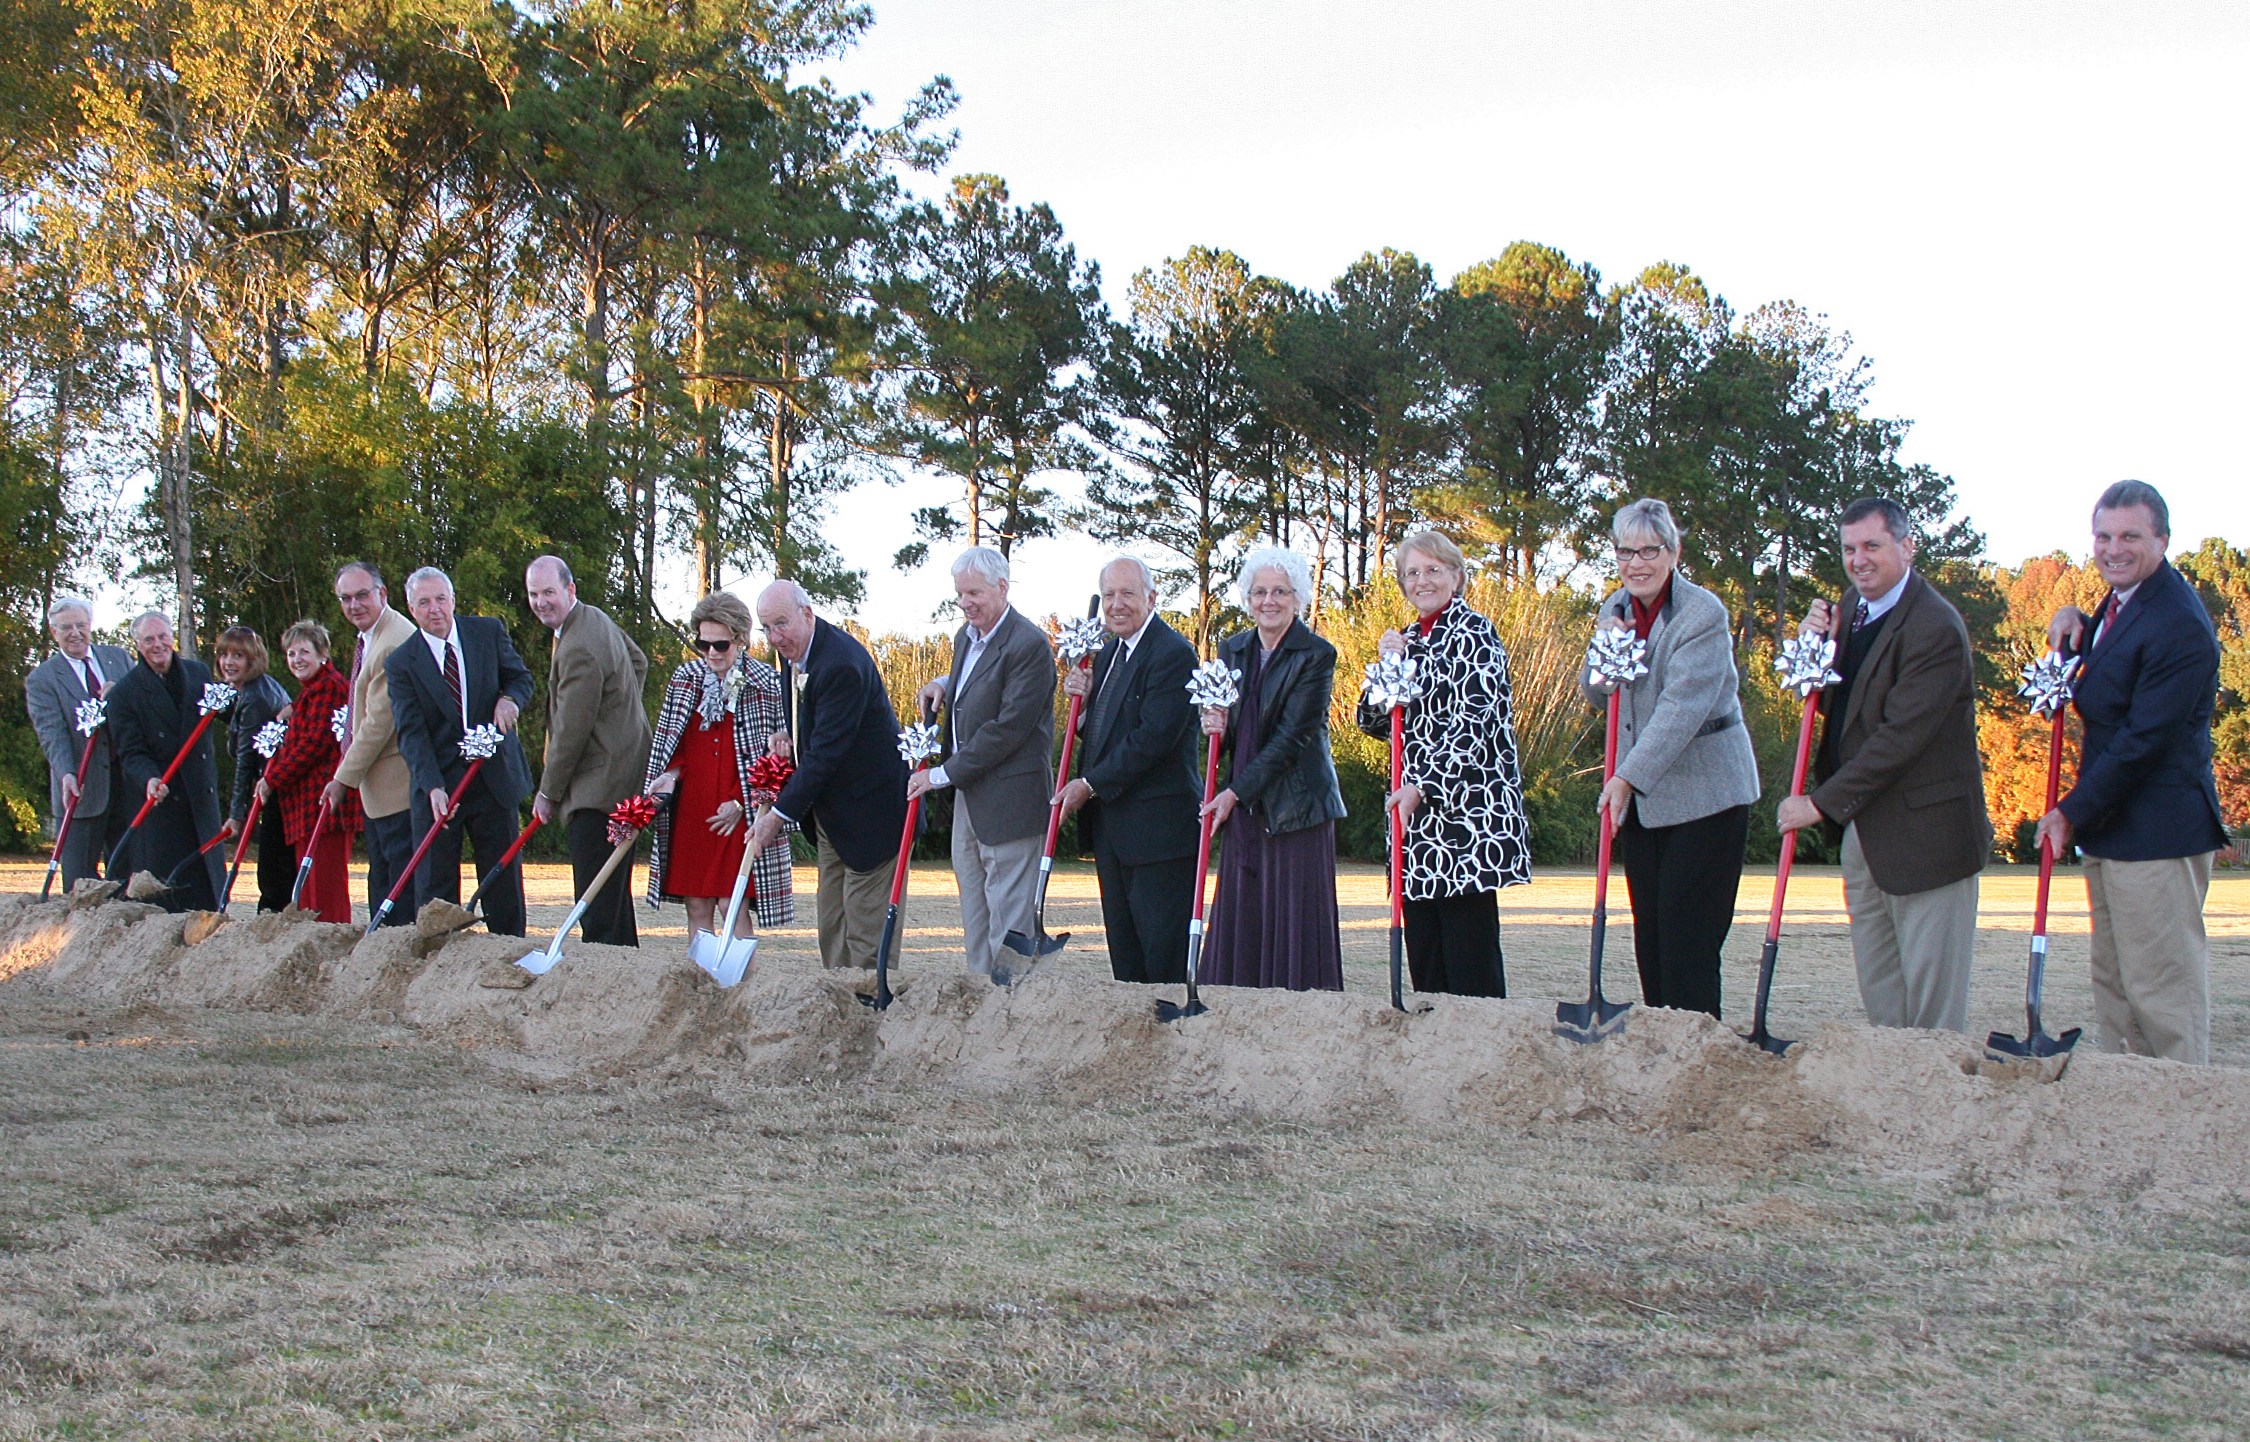 Jim and Barbara Andrews, center with red ribbons, helped to break ground on the Andrews Visitor and Education Center at the Coastal Georgia Botanical Gardens at the Historic Bamboo Farm in Savannah on Nov. 24, 2013.  The center, which was funded with a gift from the Andrews, will serve as center of learning and social activity as the garden undergoes major renovations over the next several years.